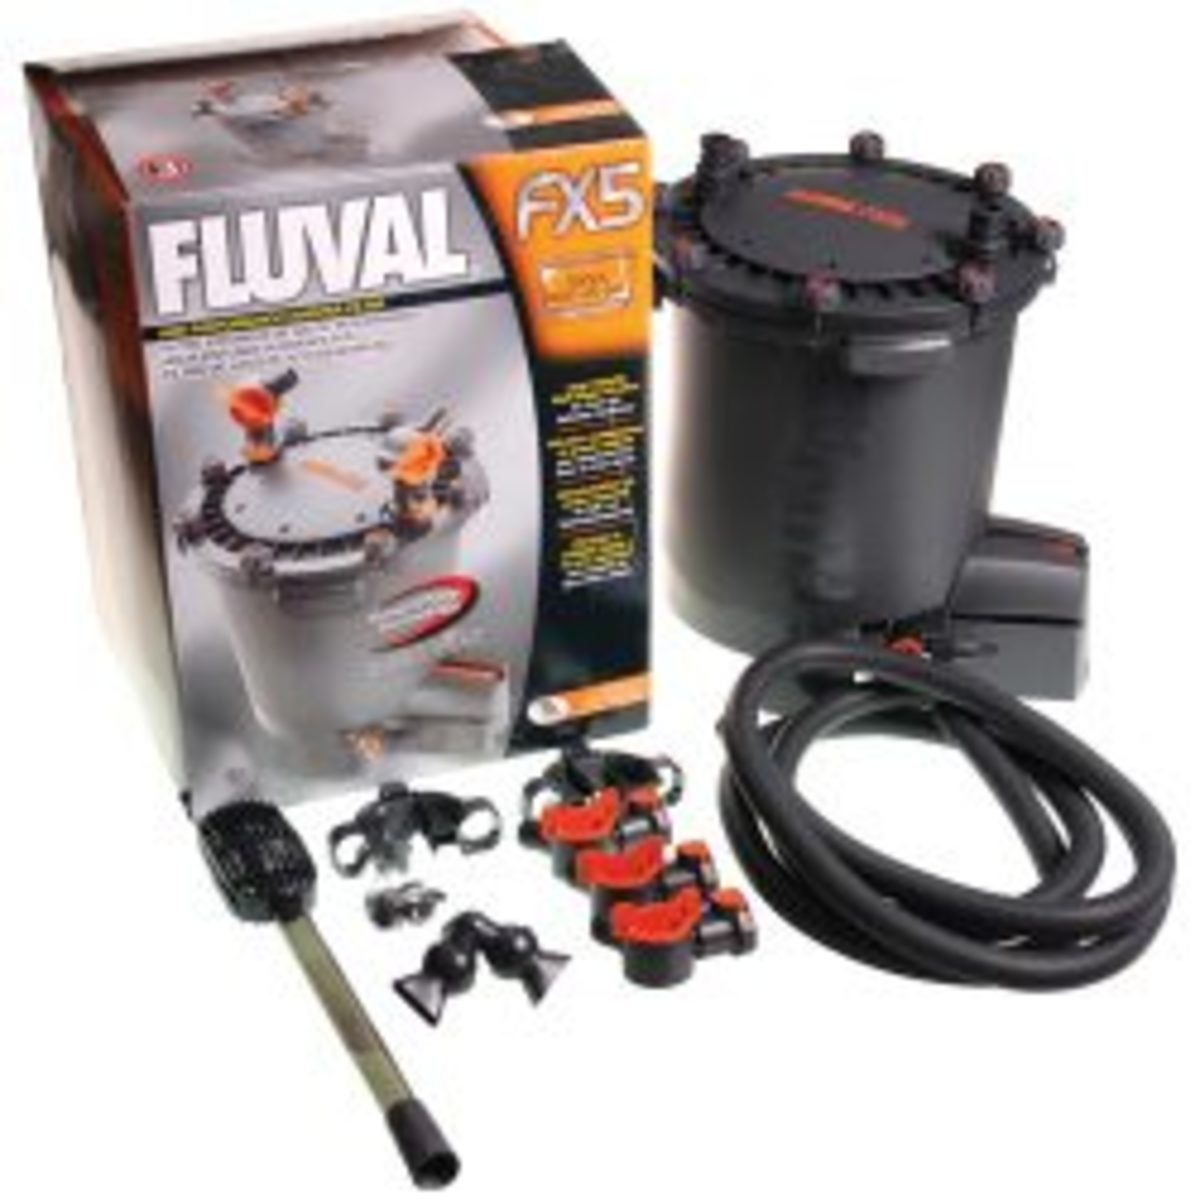 Aquarium Canister Filters The Fluval Fx5 Filter Hubpages